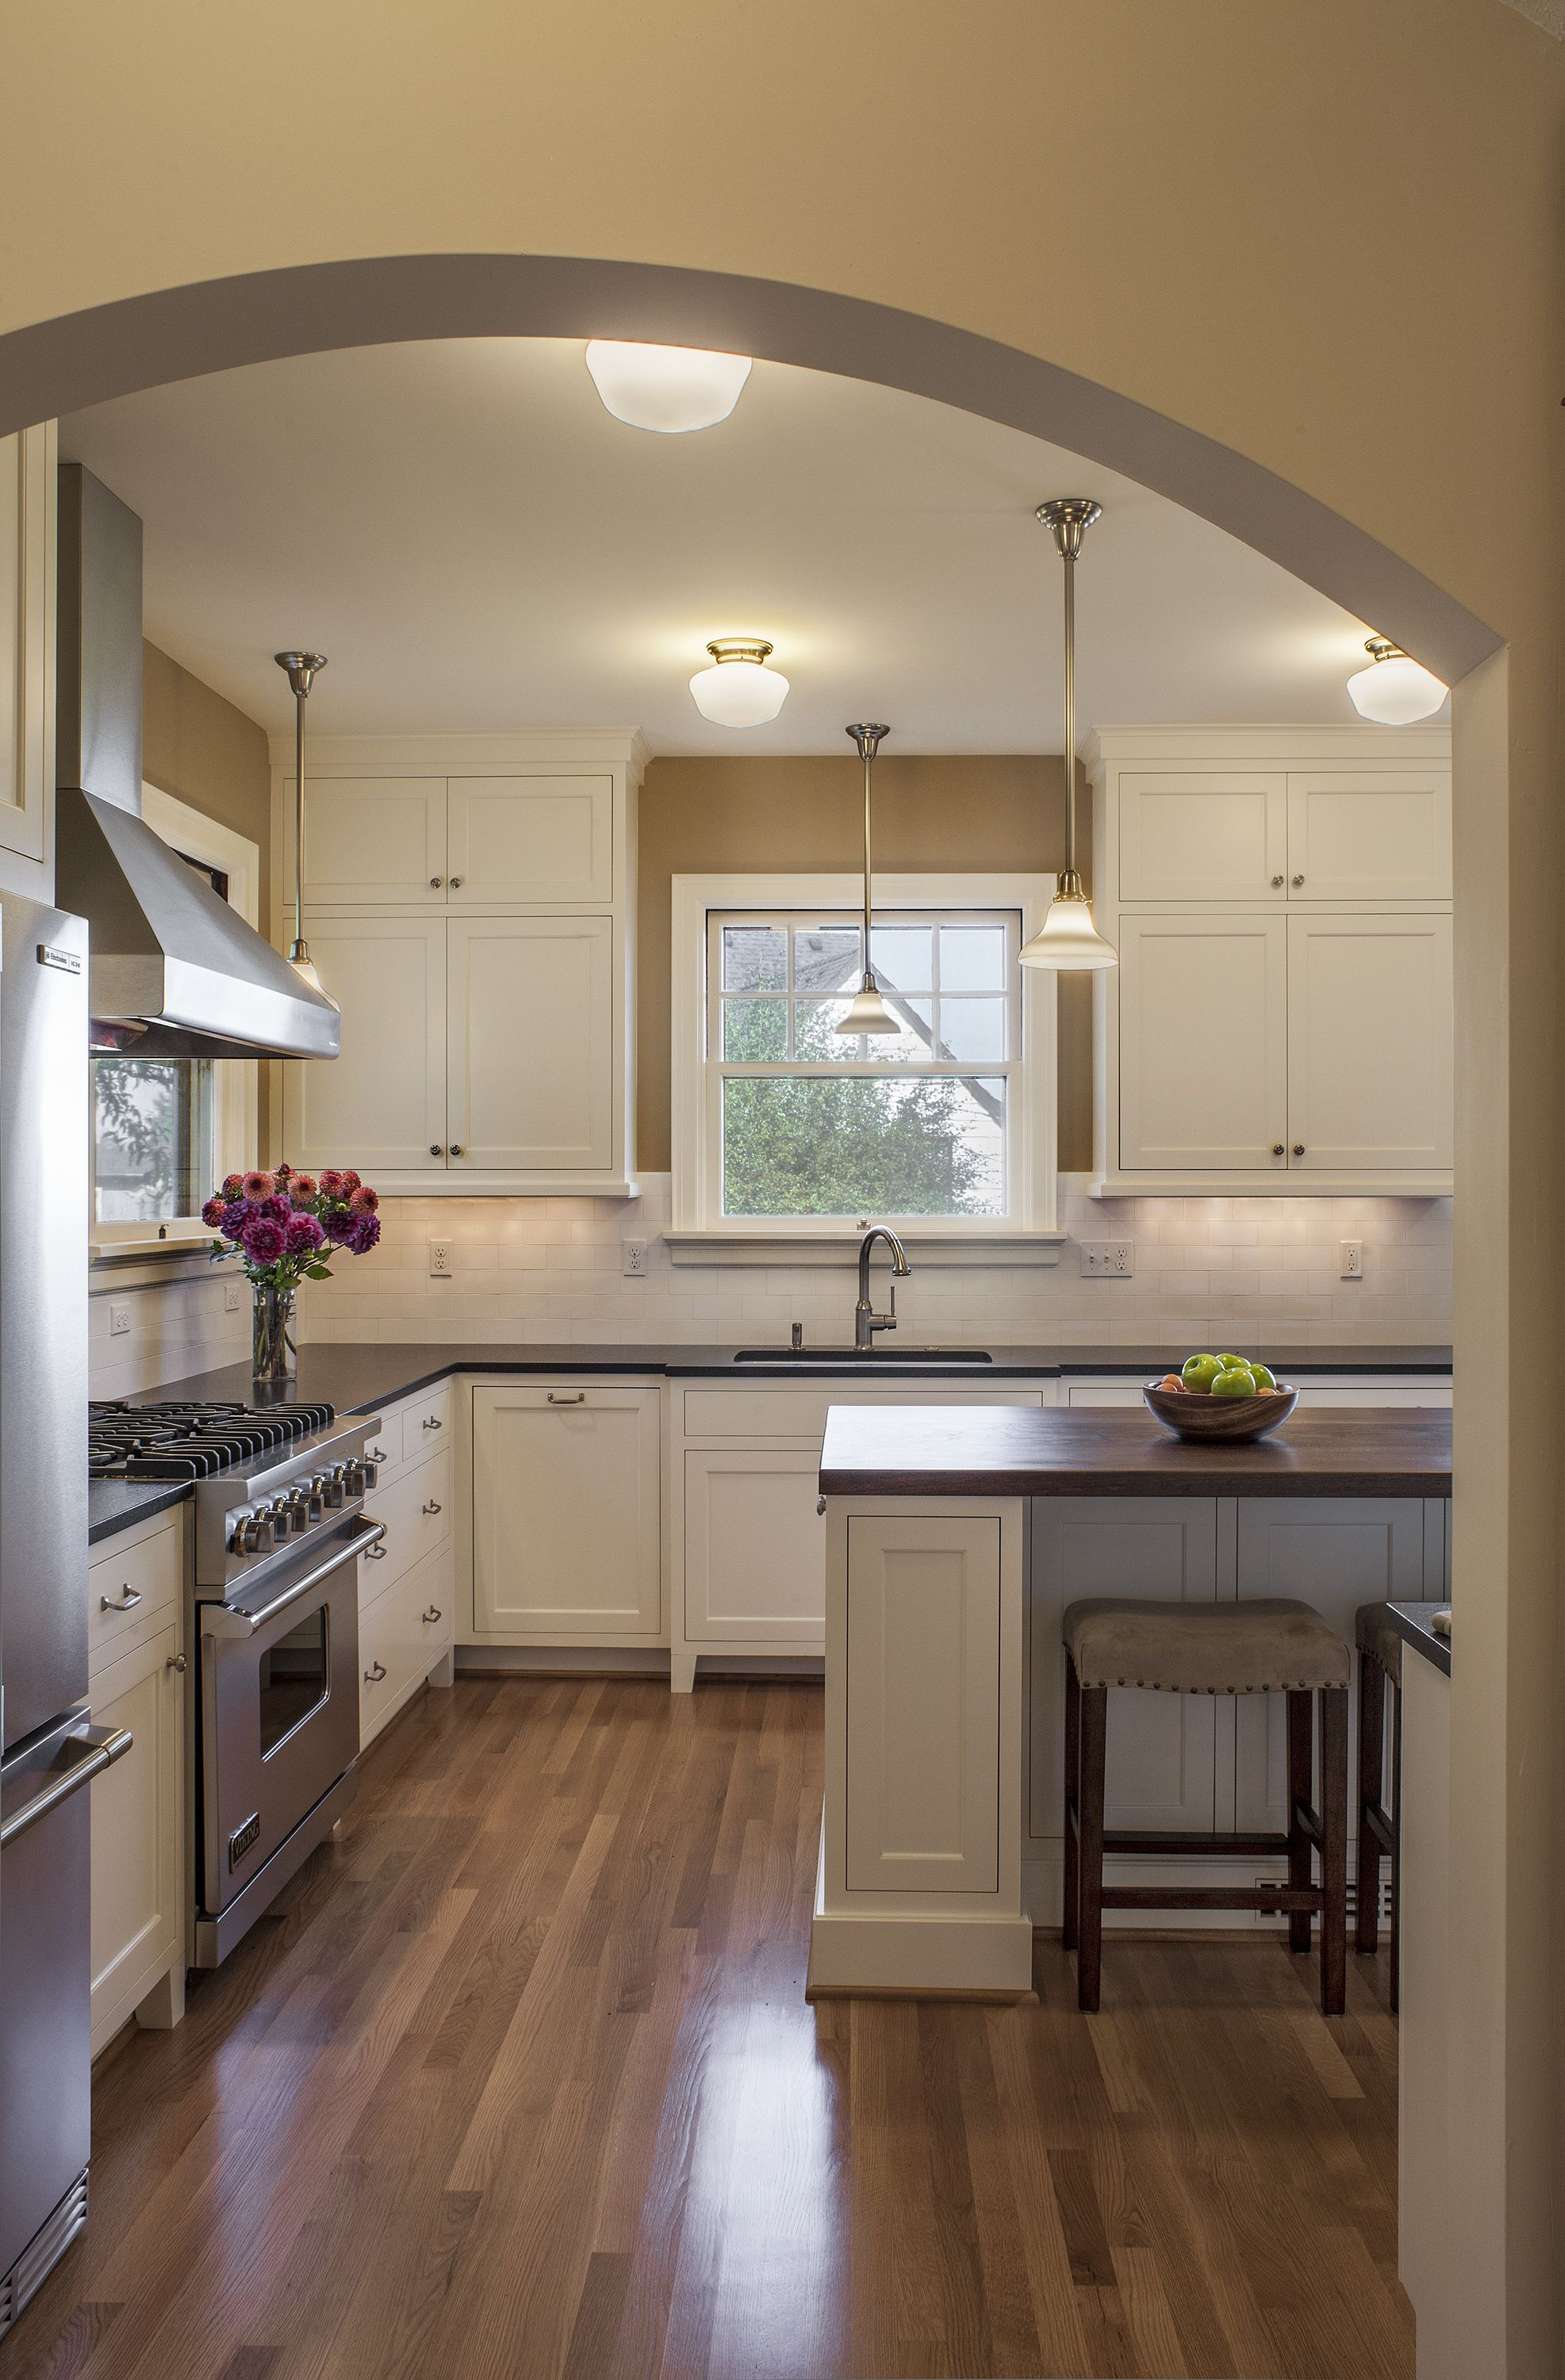 Kitchen Remodel  Island Wood Floors White Cabinets Stainless Custom How To Design A Kitchen Renovation Inspiration Design